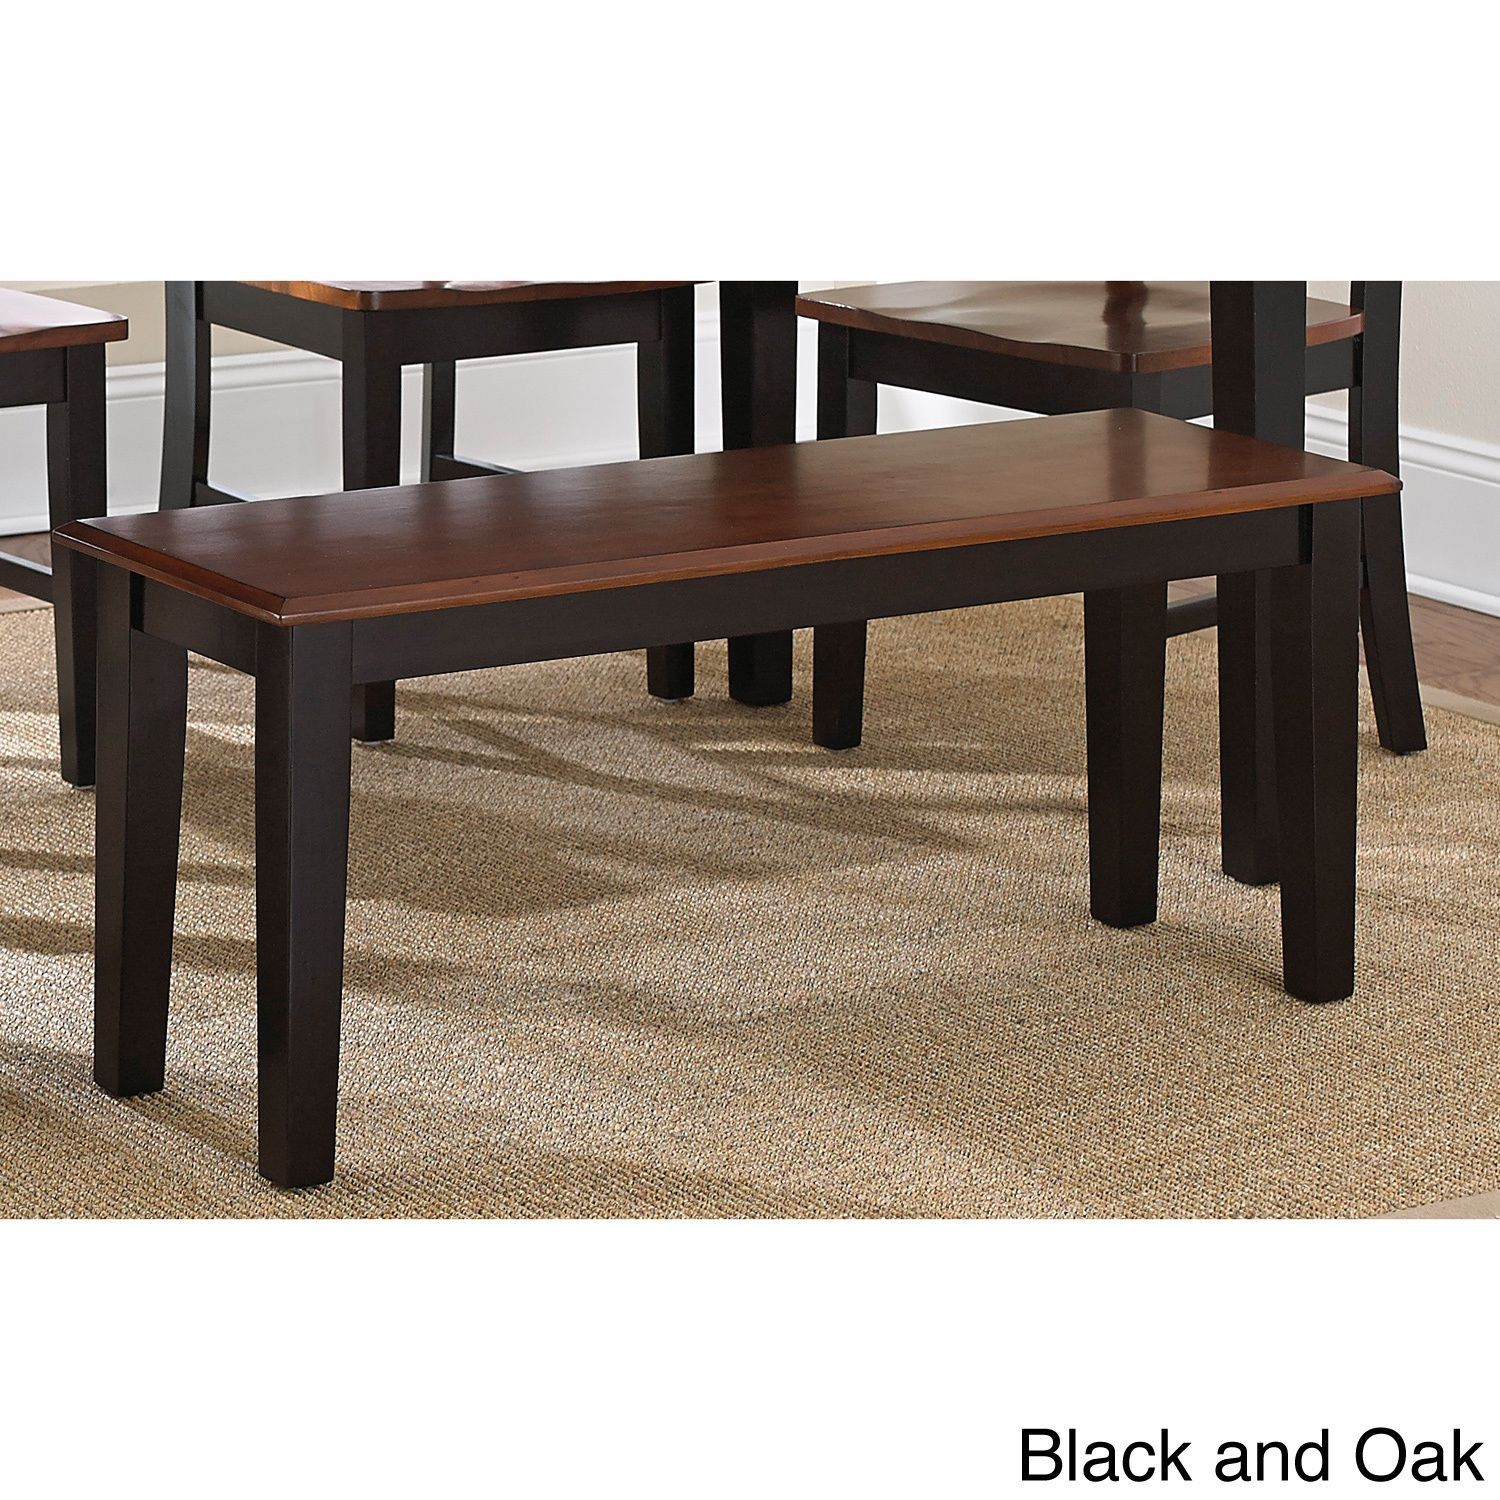 Kitchen Bench Finishes: The Keaton Dining Bench Is Available In An Oak Finish Or A